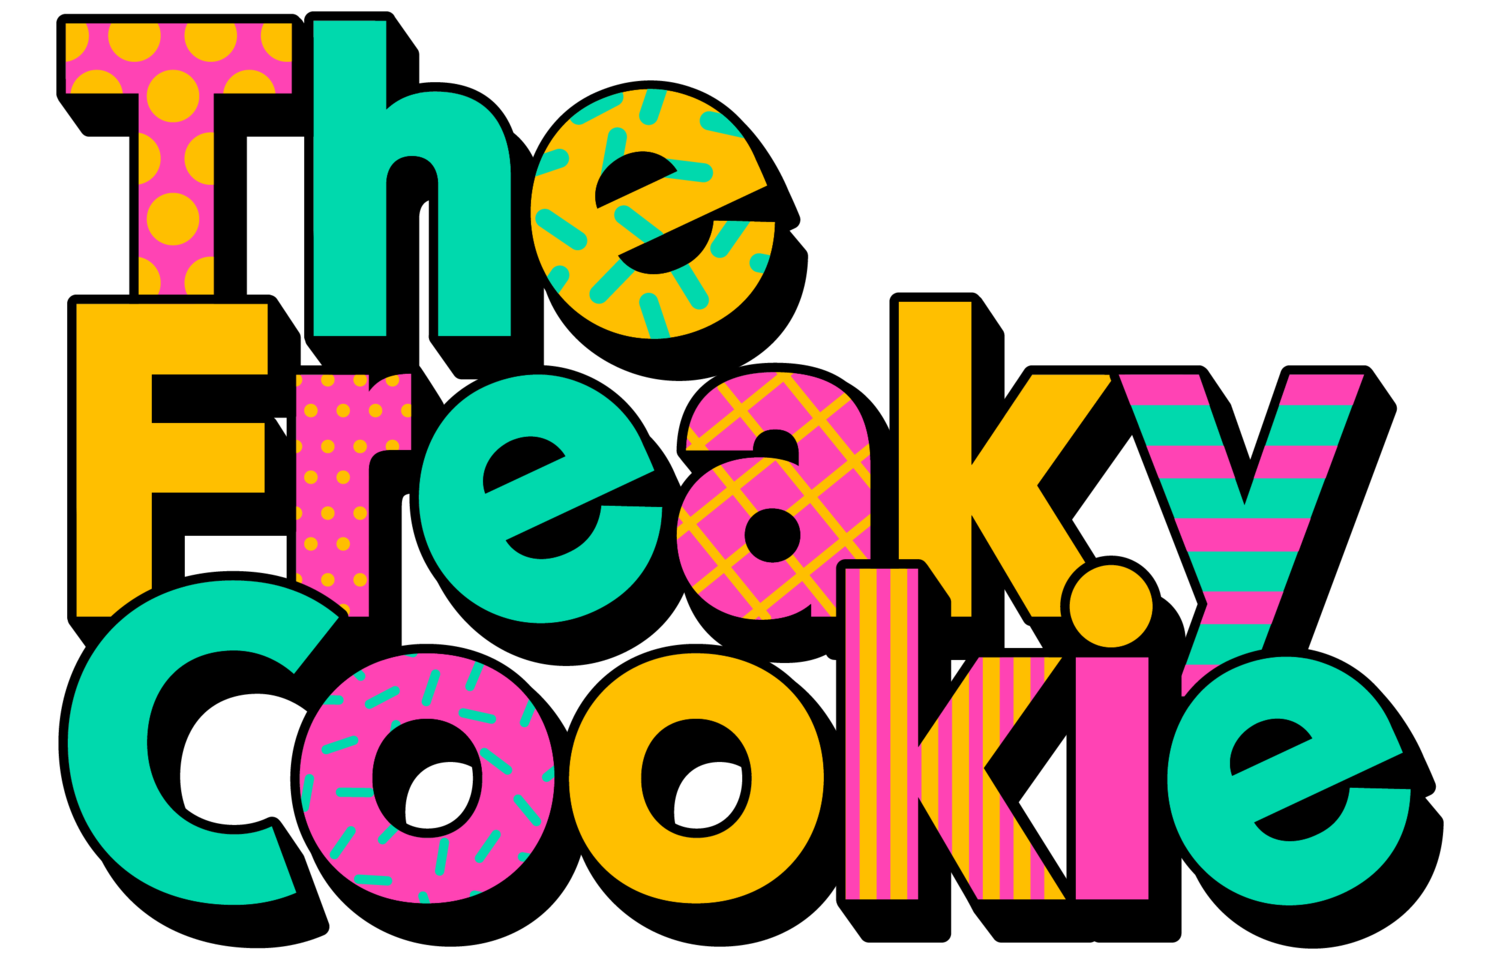 The Freaky Cookie